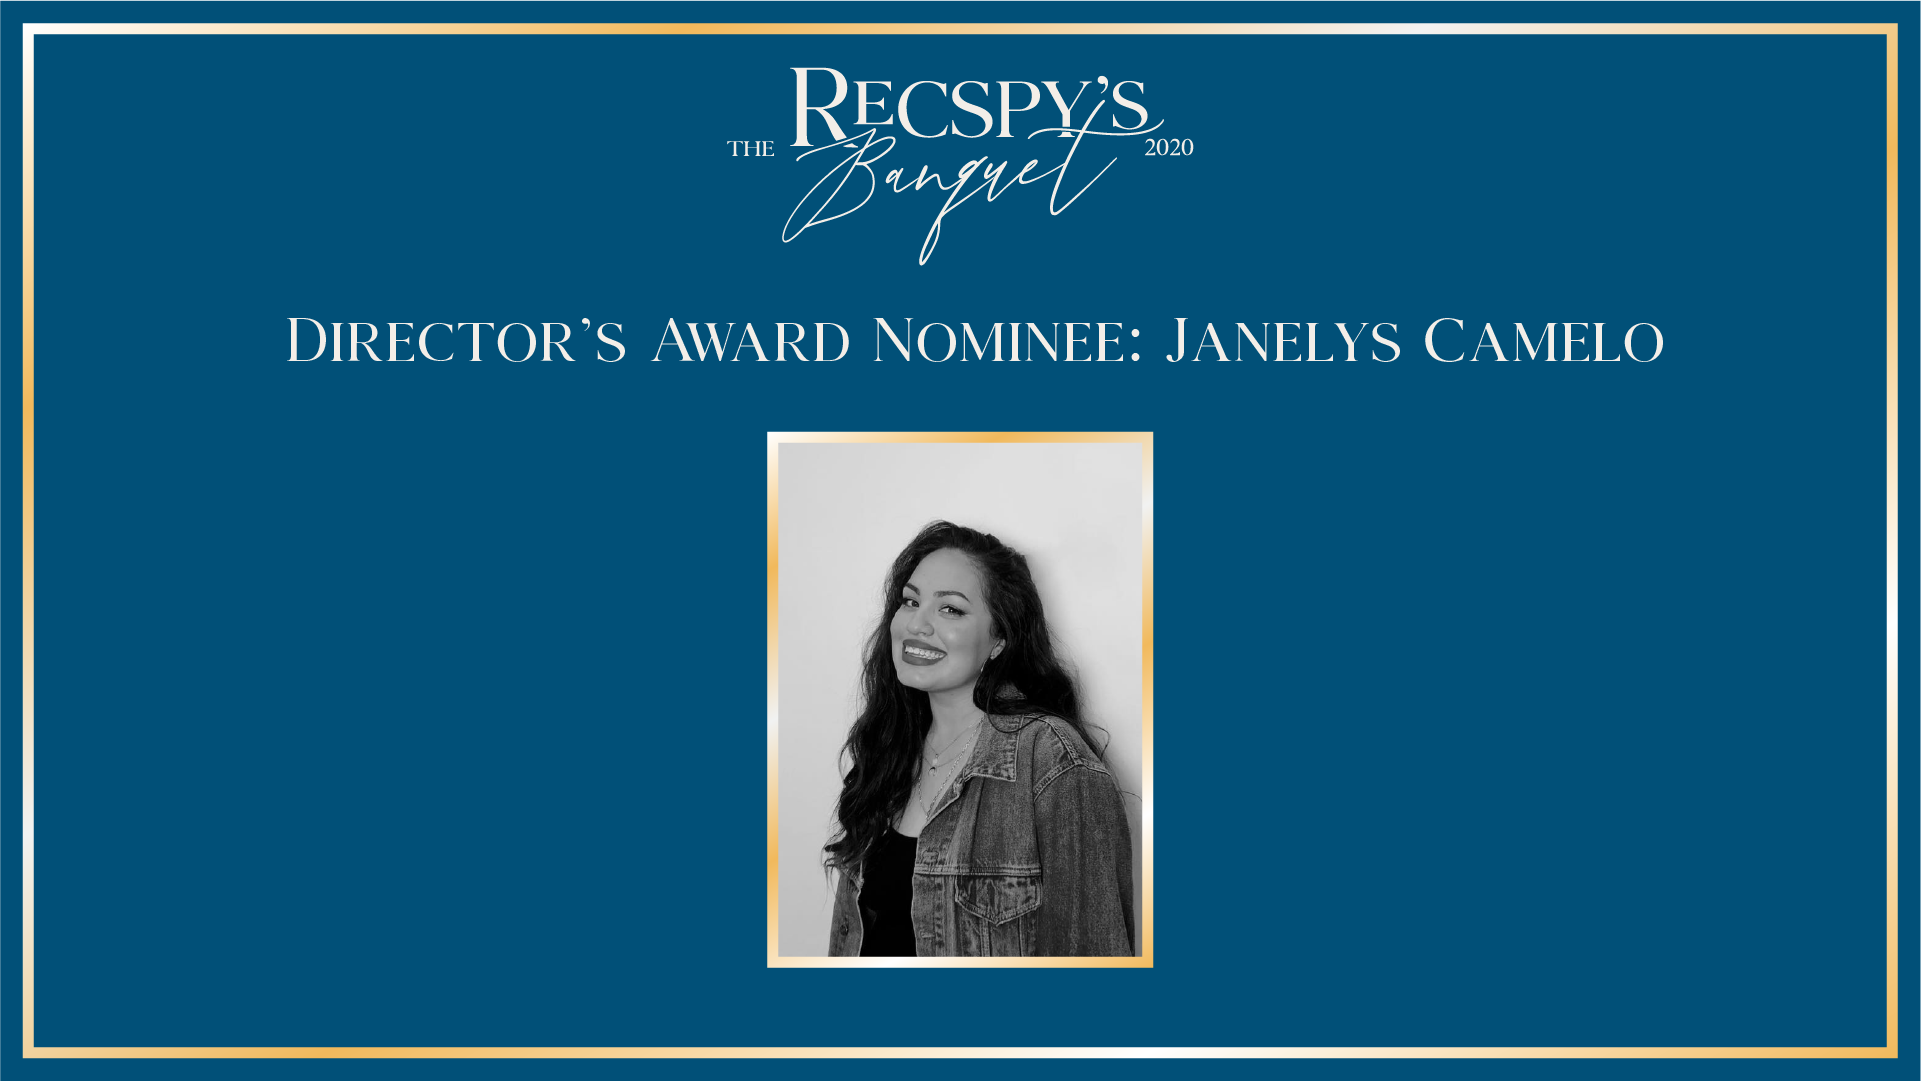 Director's Award Nominee: Janelys Camelo